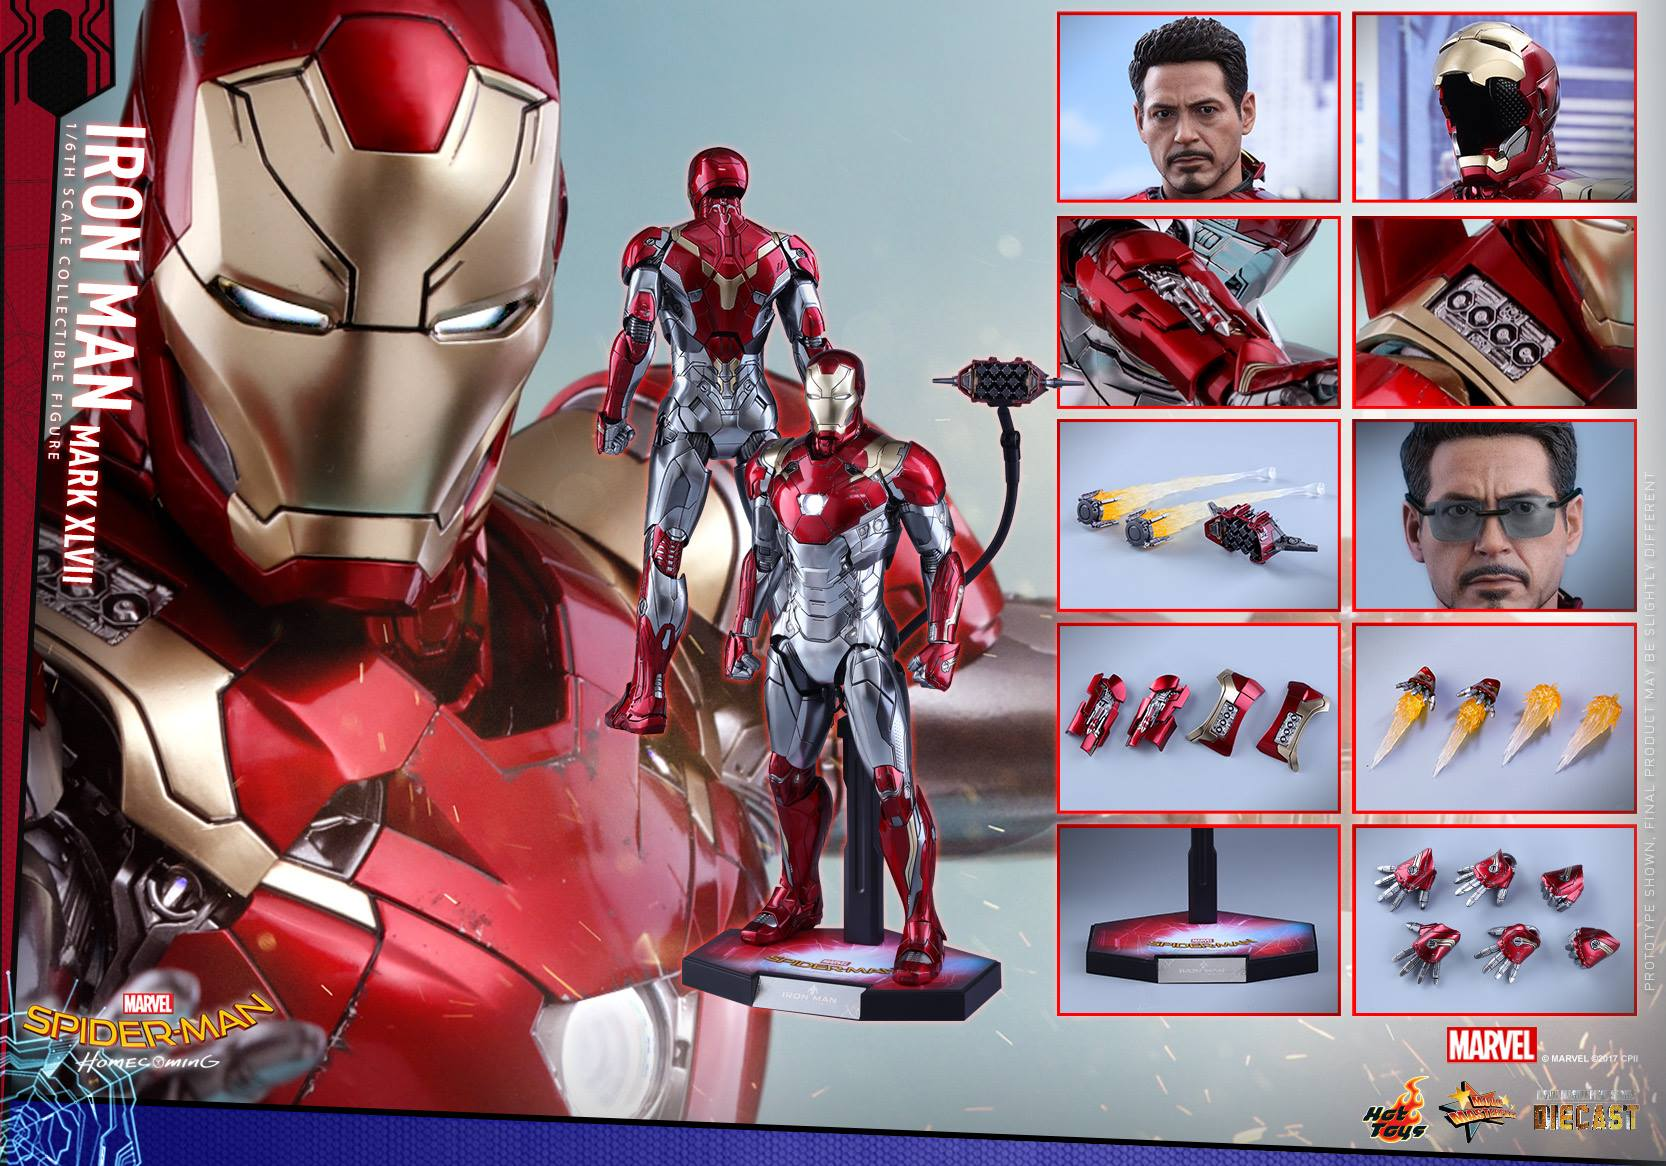 Hot-Toys-Iron-Man-Mark-XLVII-Figure-022